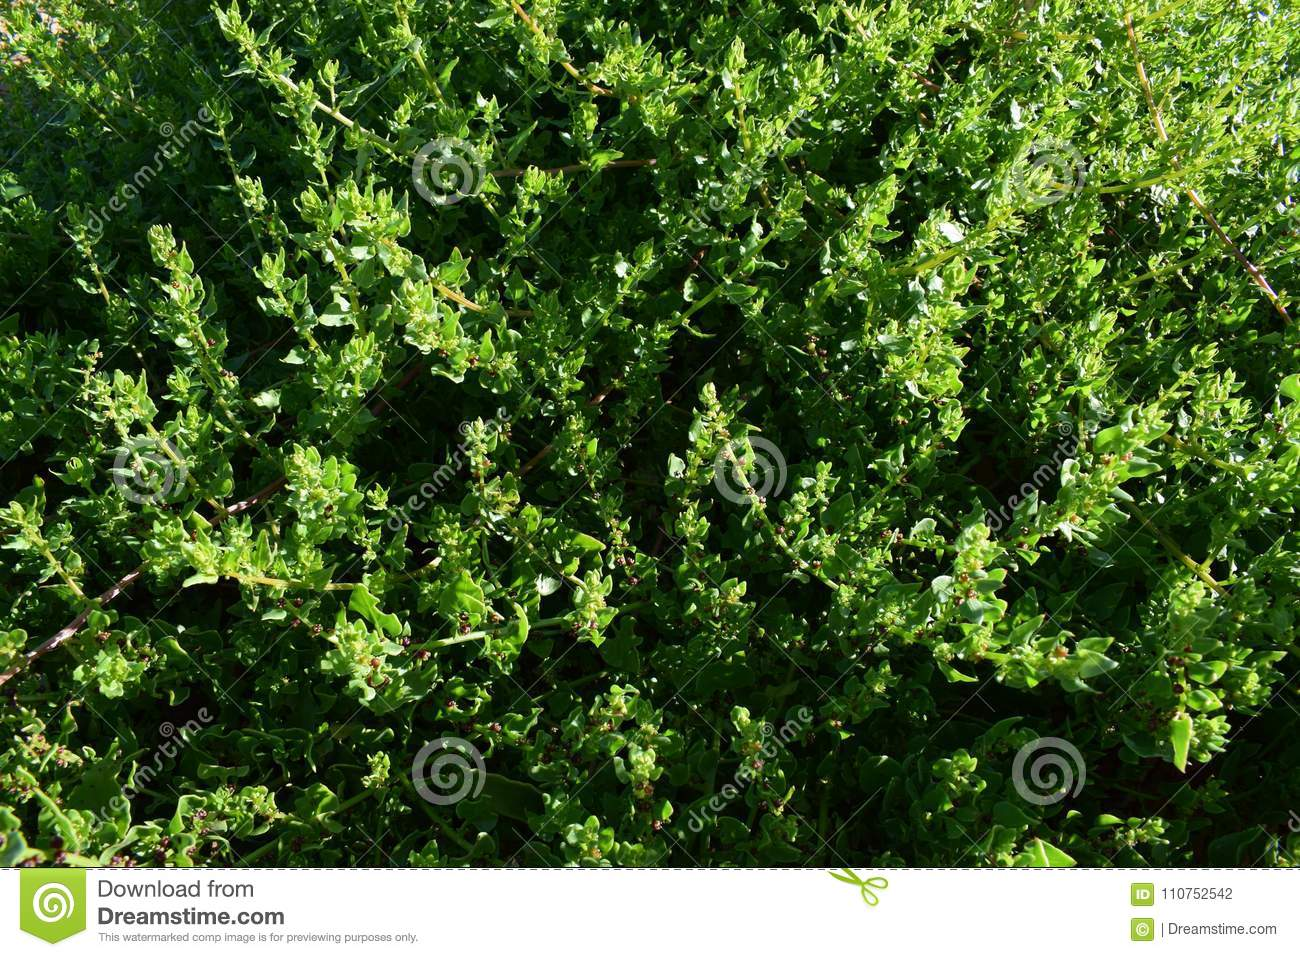 Green plants background texture